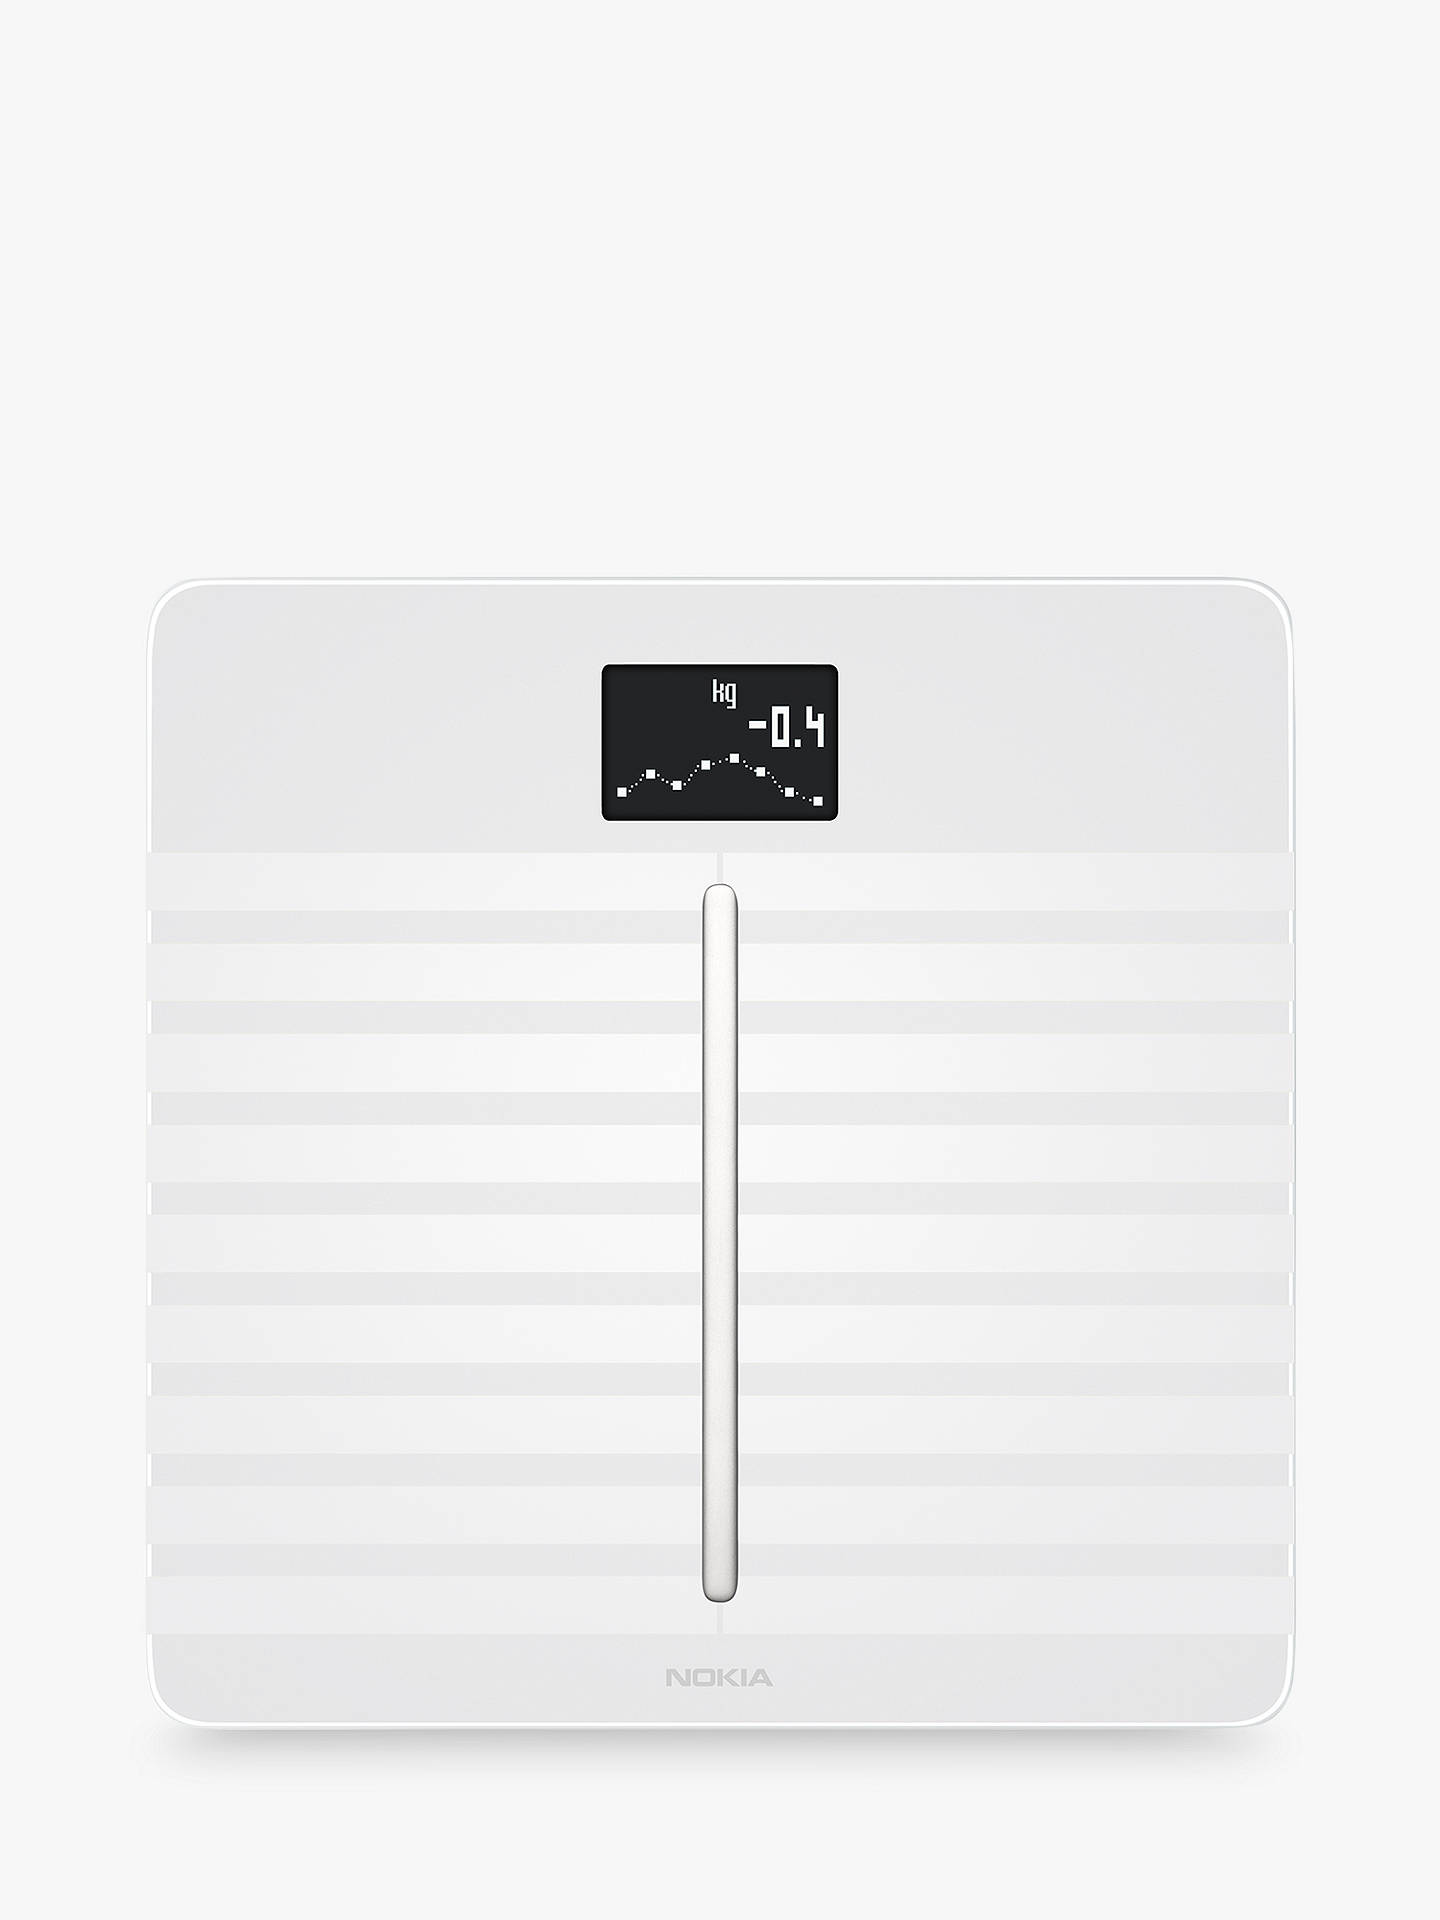 Withings Body Cardio Scale >> Withings / Nokia Body Cardio Wi-Fi Smart Scale with Body Composition and Heart Rate Monitor at ...